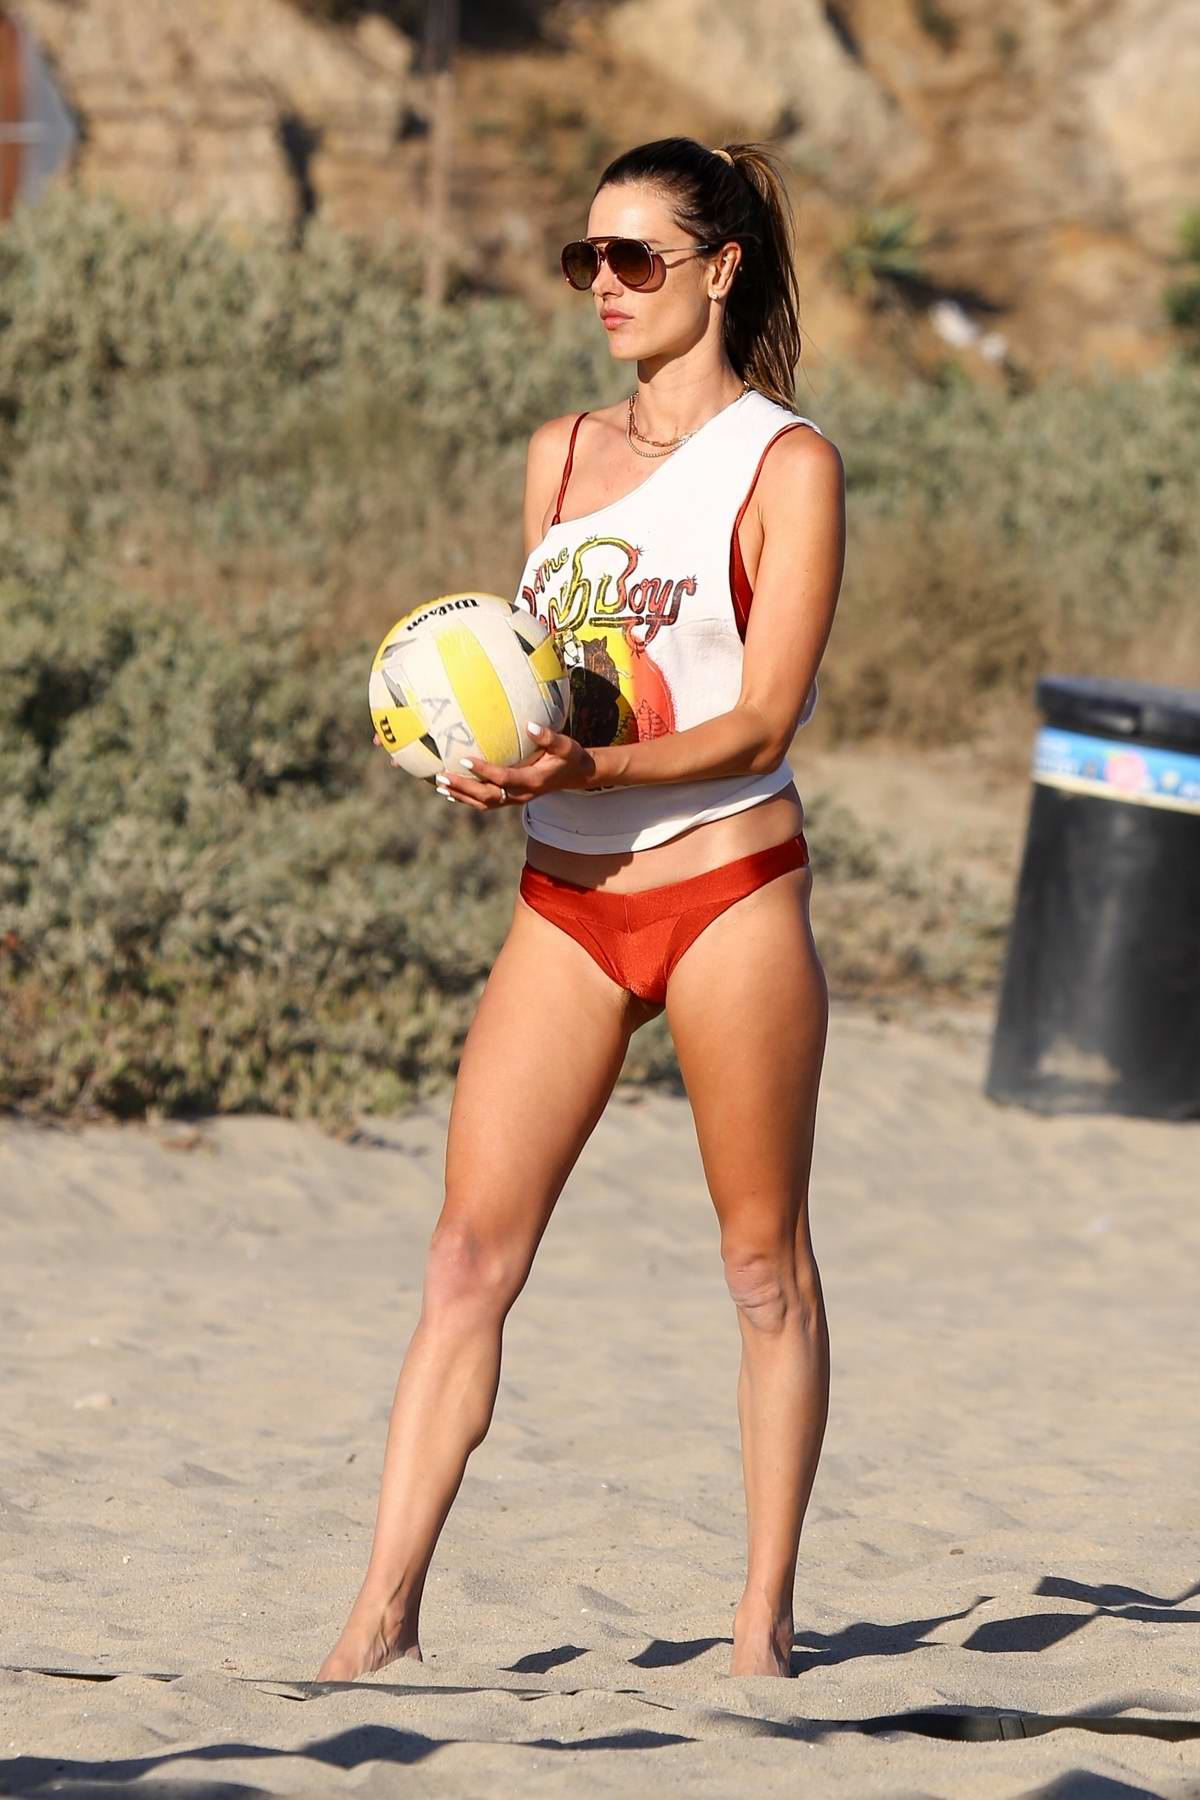 Alessandra Ambrosio looks stunning in a red bikini while out playing beach volleyball with friends in Malibu, California